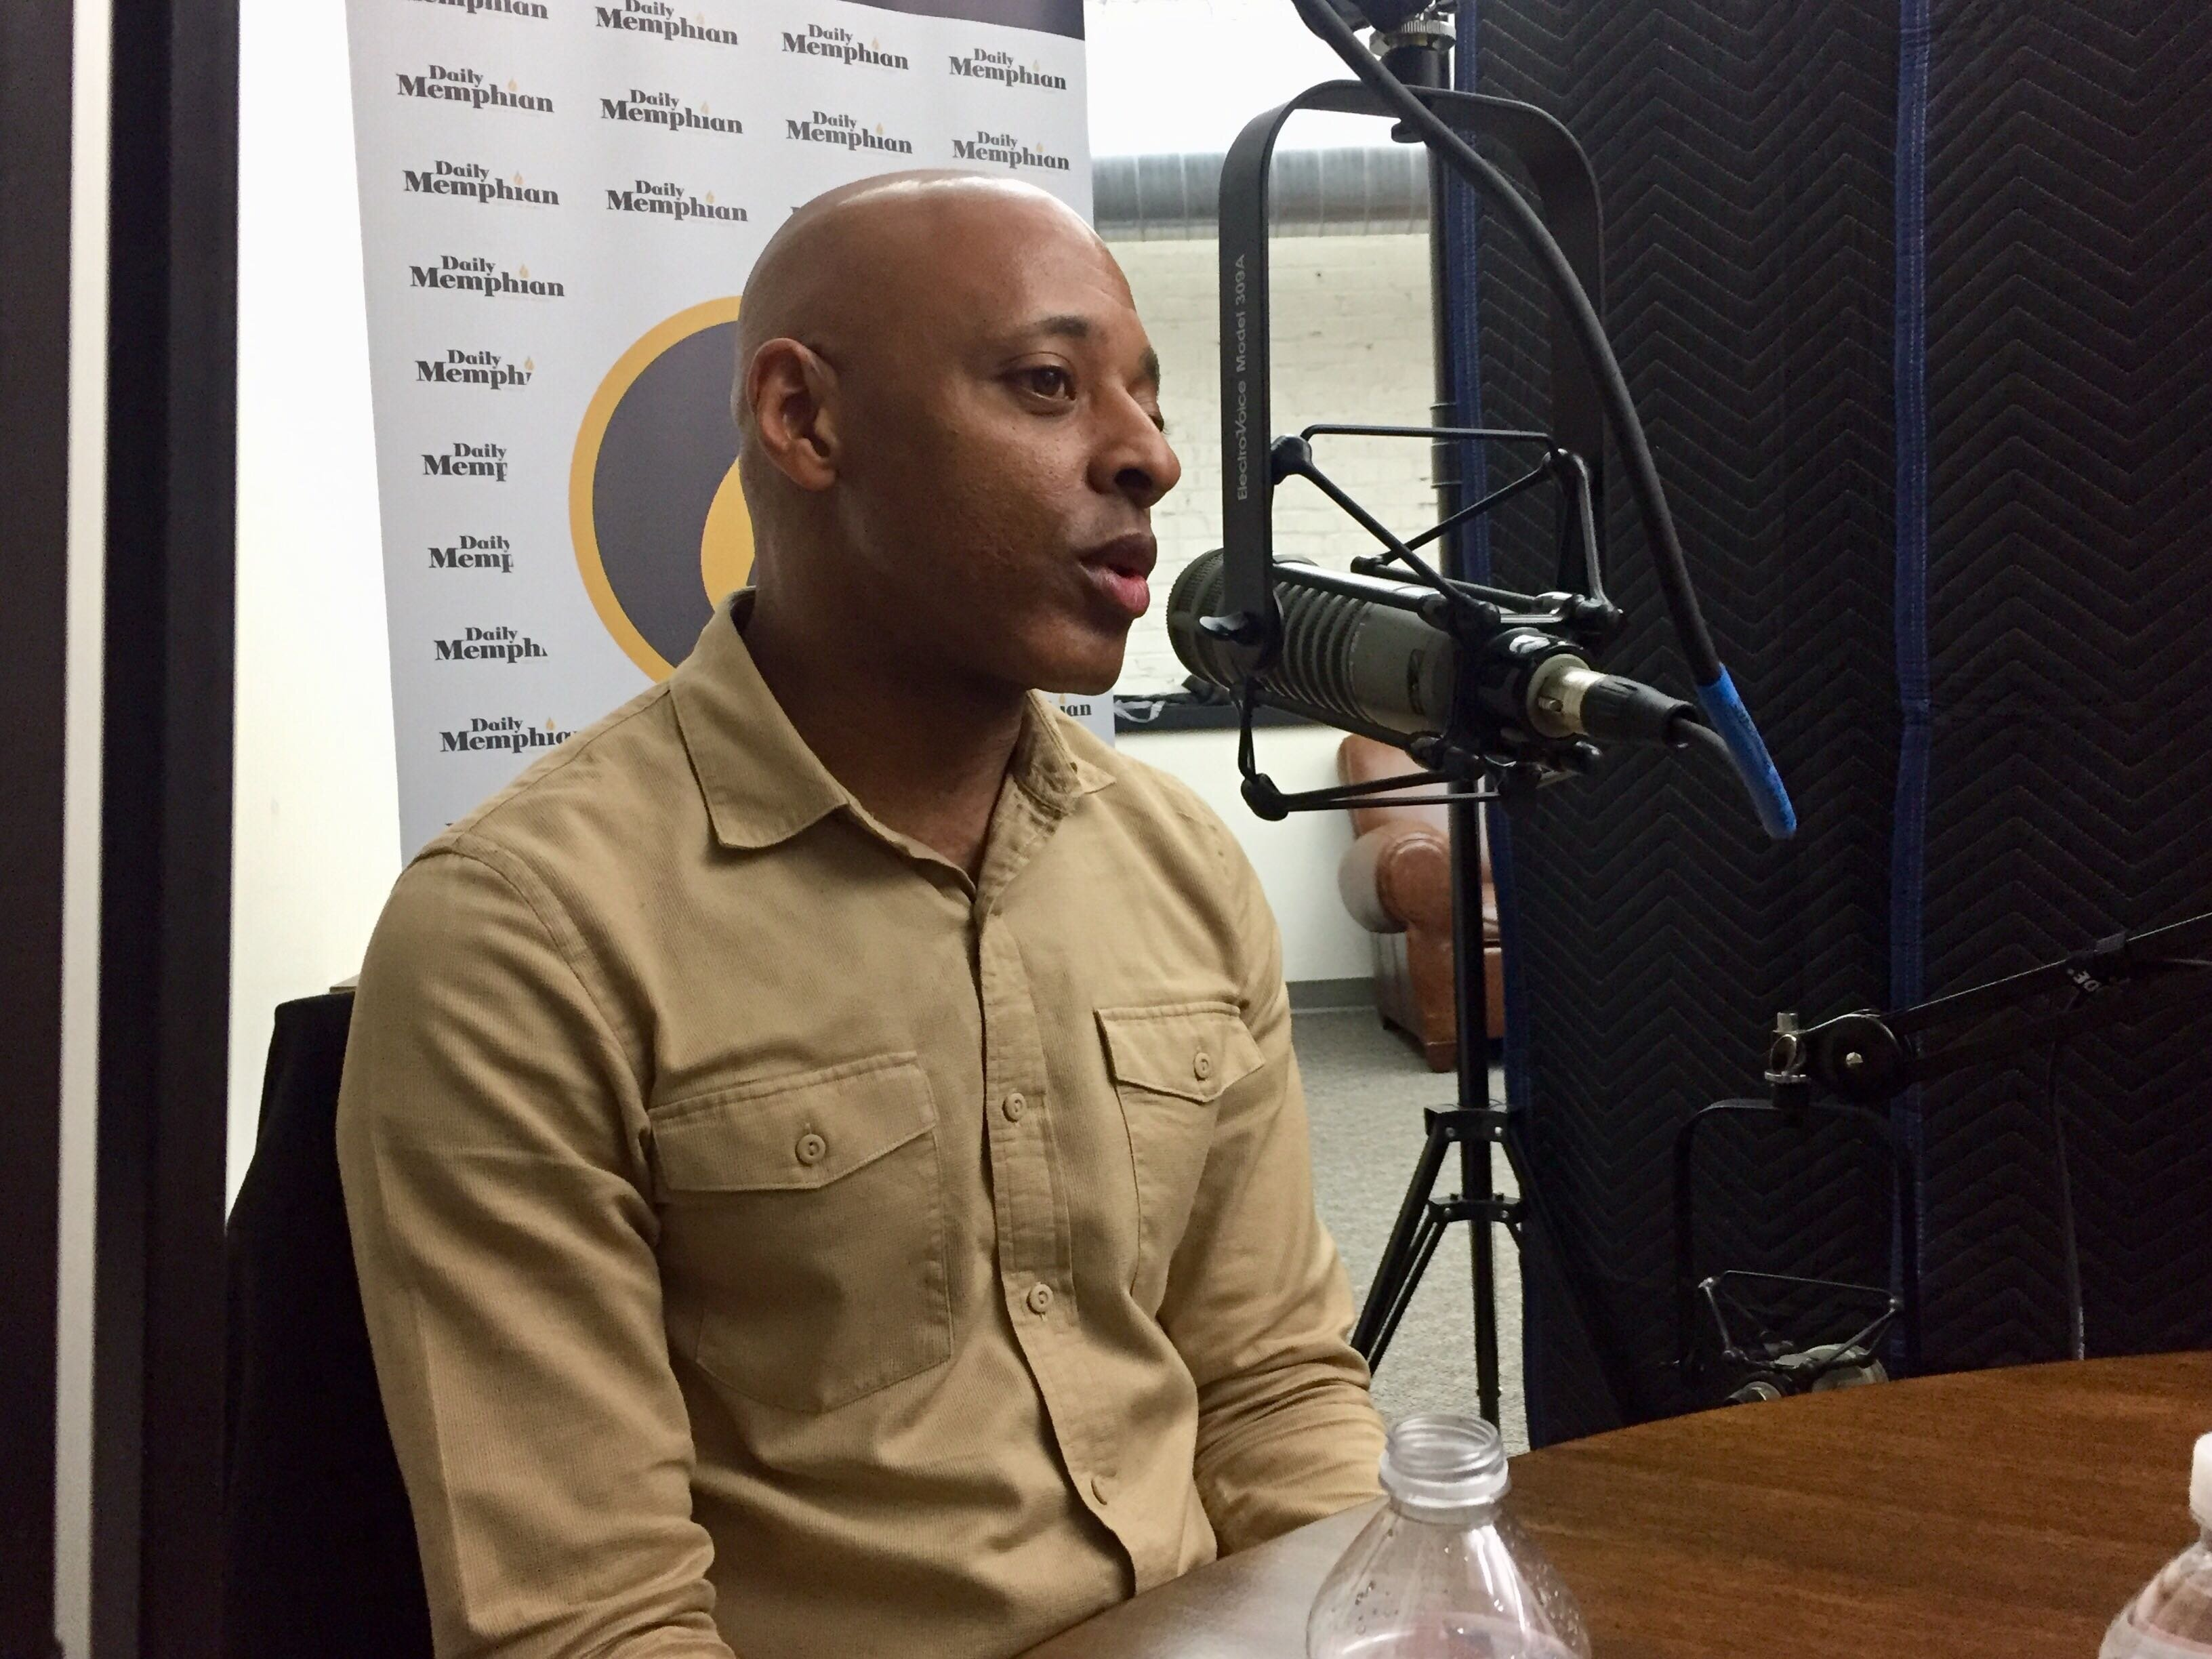 Andre Jones with Jones Urban Development discuss local efforts to support emerging minority- and women-owned real estate developers on the On the Ground Podcast. (Natalie Van Gundy)